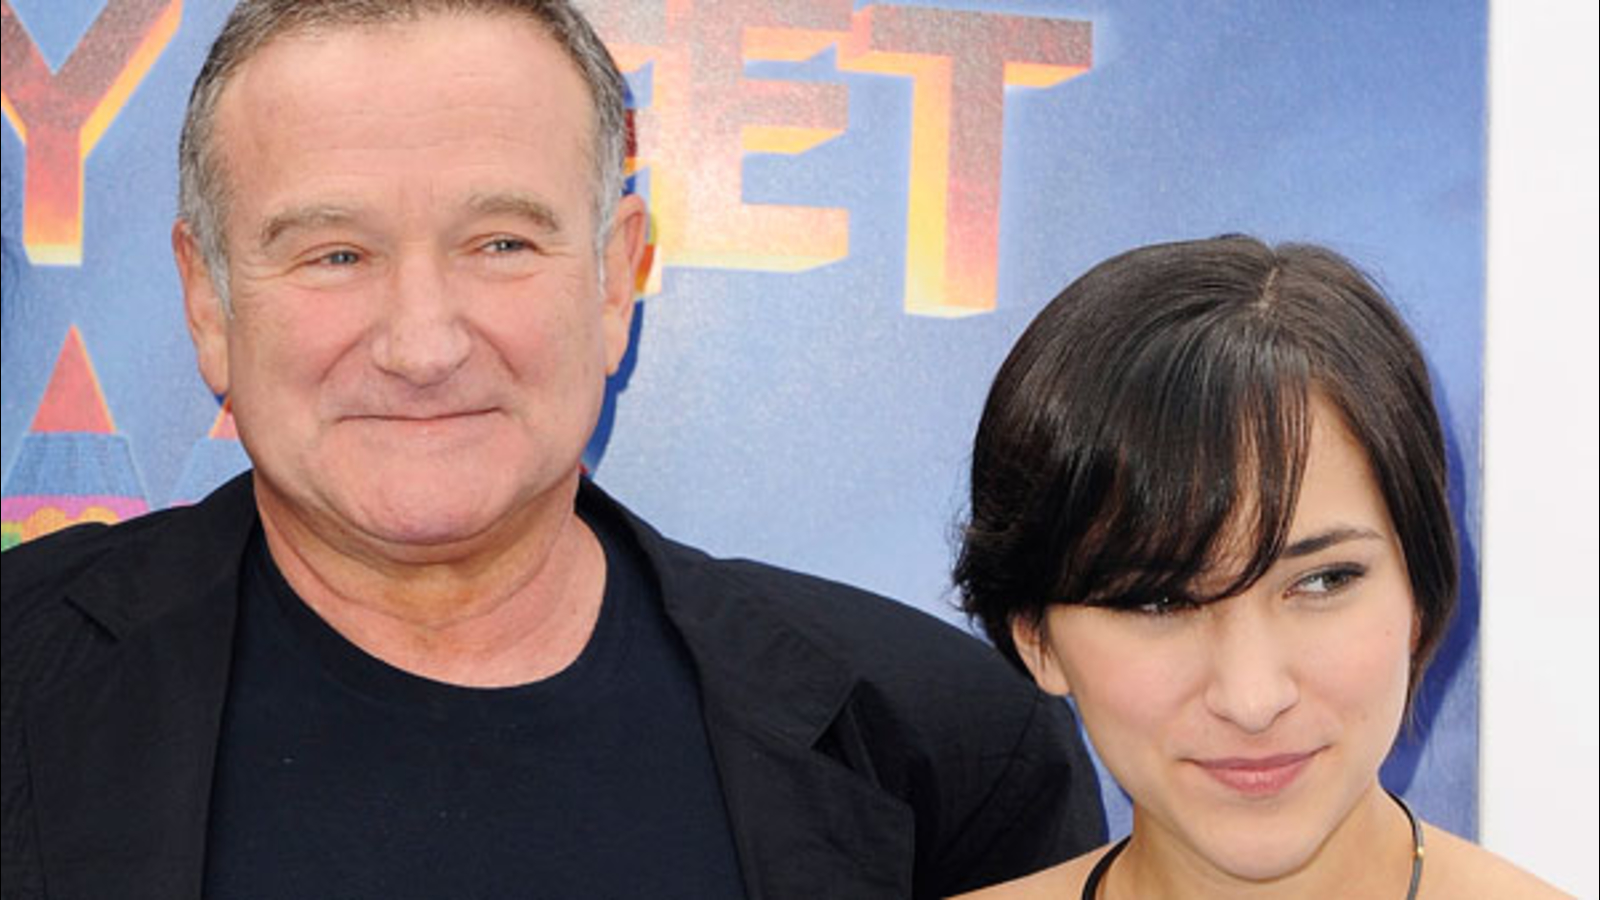 Robin Williams' daughter tweets touching tribute to her dad